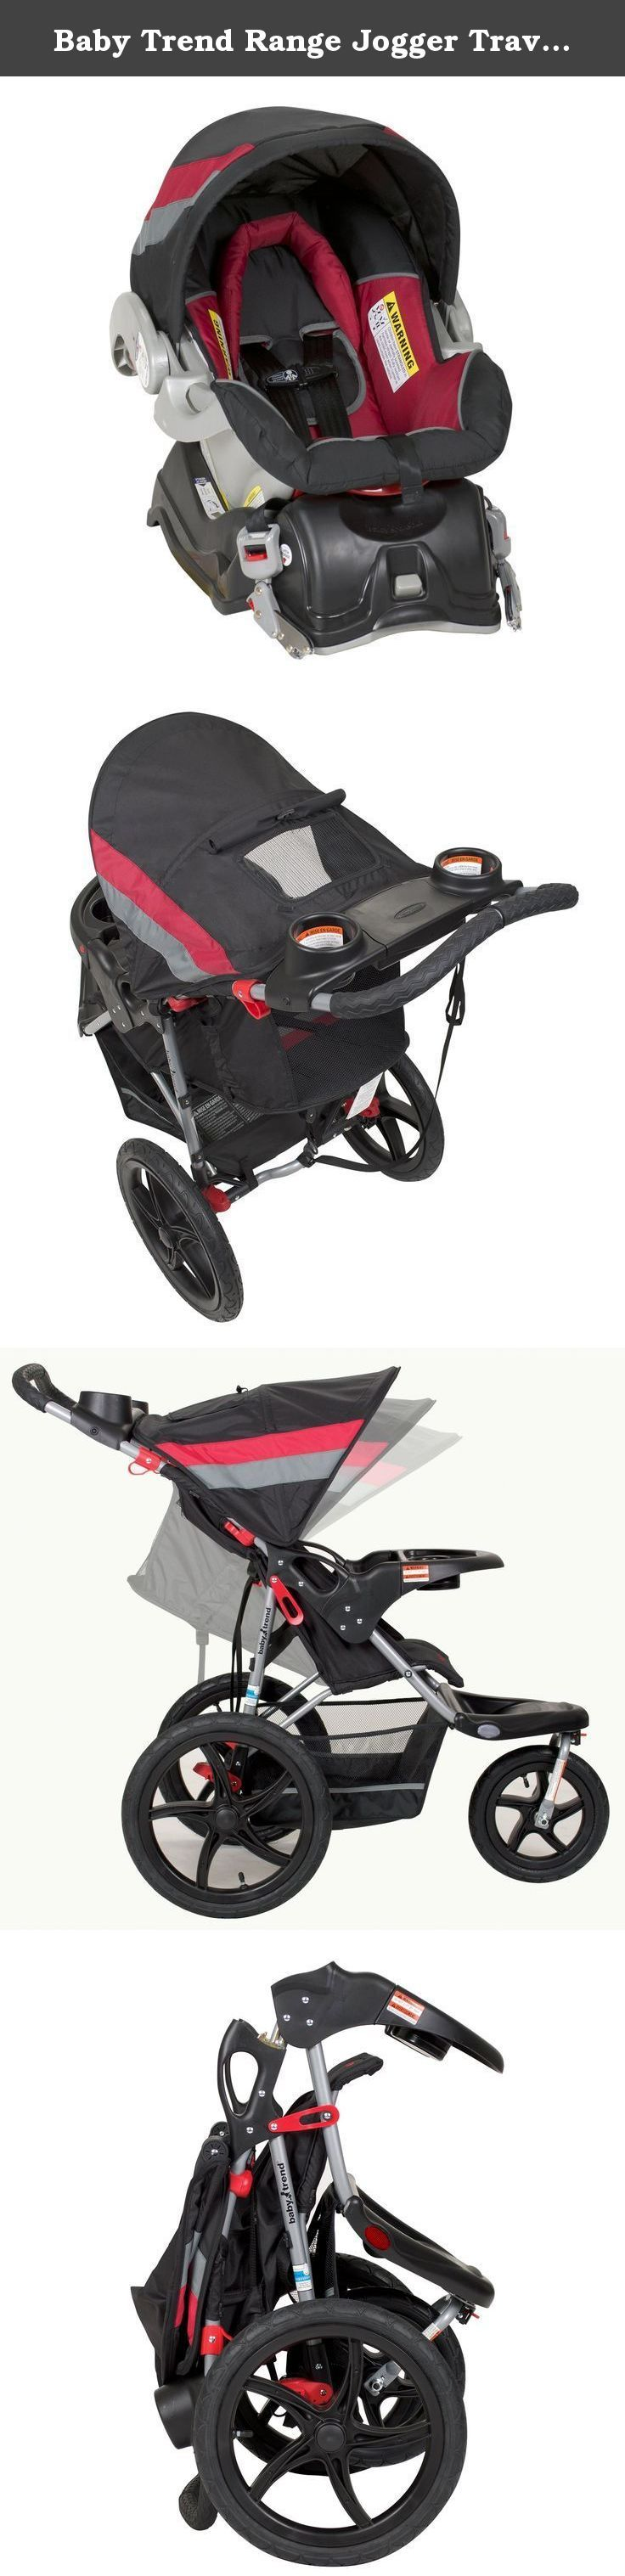 Baby Trend Range Jogger Travel System, Spartan. The Baby Trend Range Jogger switches from running to resting in no time! Locks and unlocks quickly and easily. Safe and secure when you've stopped; easy to maneuver when you're out for a jog. Multi-position, reclining padded seat and fully adjustable 5-point safety harness and tether strap. The Range Jogging Stroller features hi-impact lightweight composite all-terrain wheels. A locking swivel wheel that allows you to lock the front wheel in...